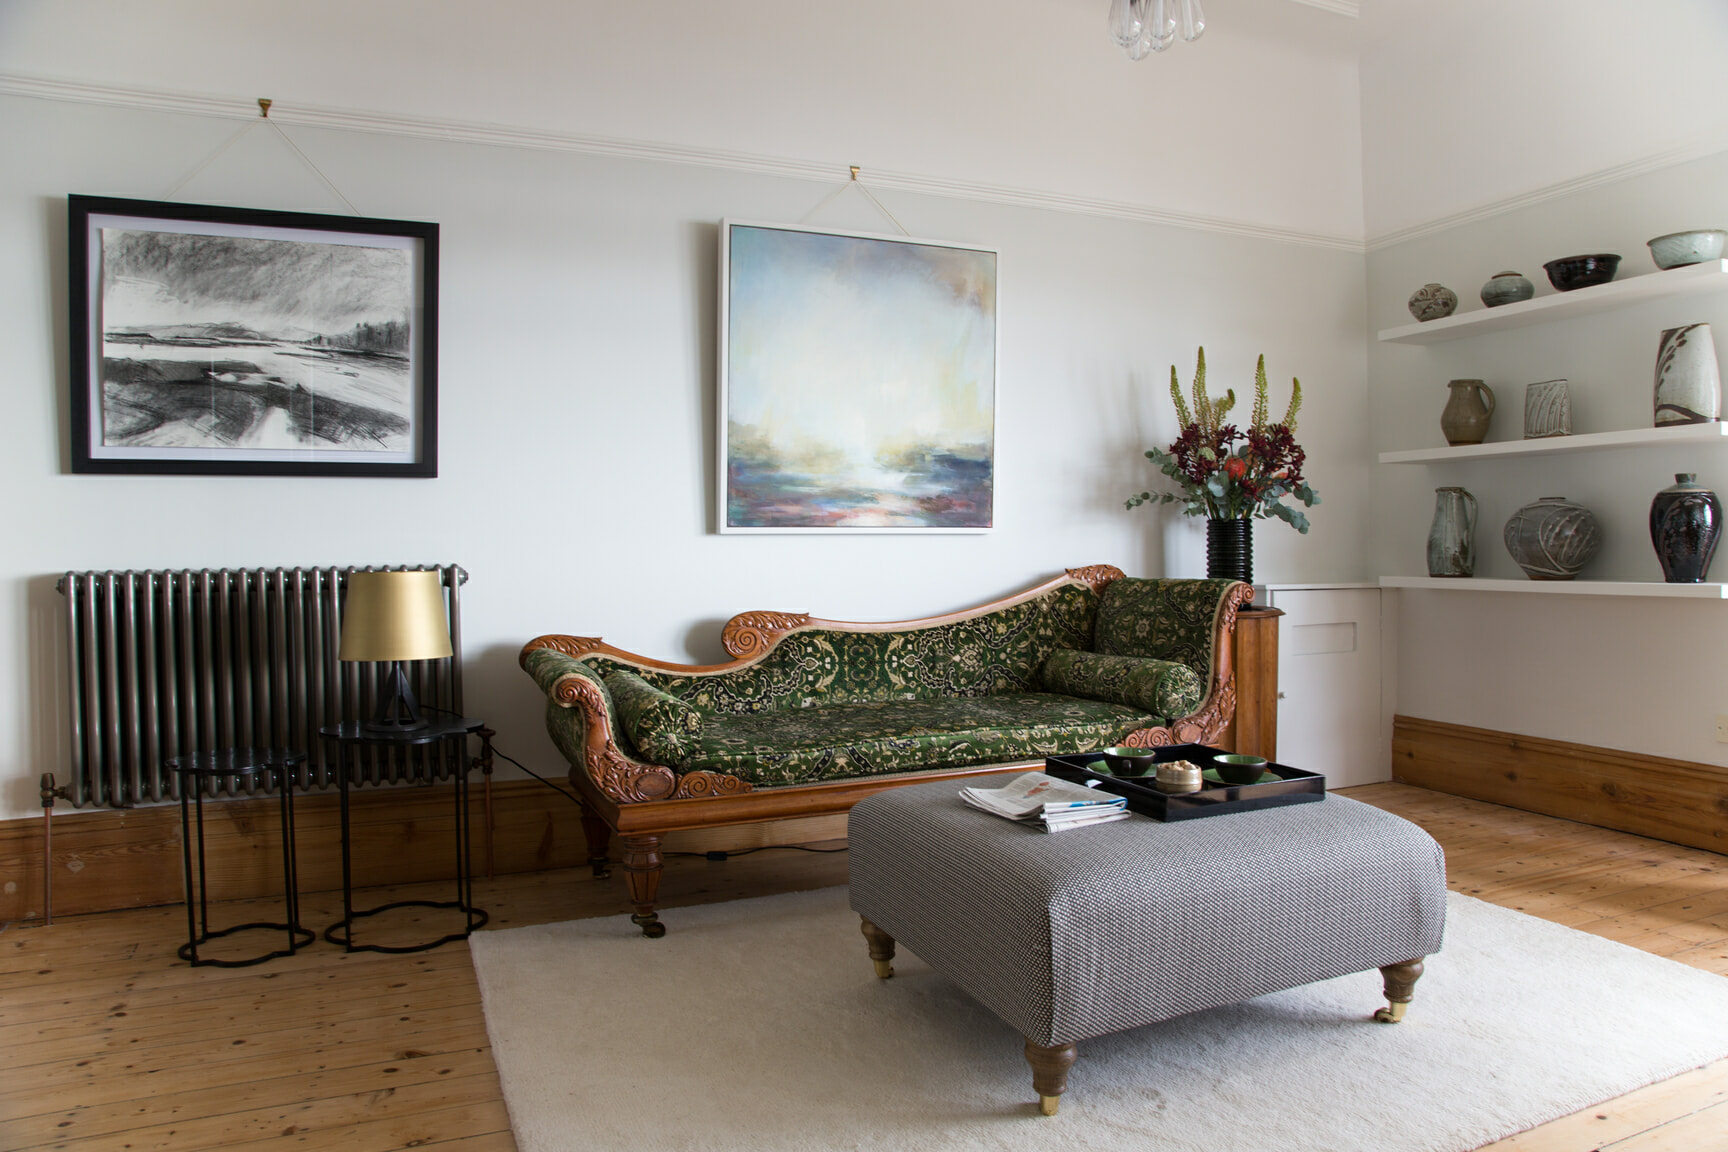 living room with a chaise longue